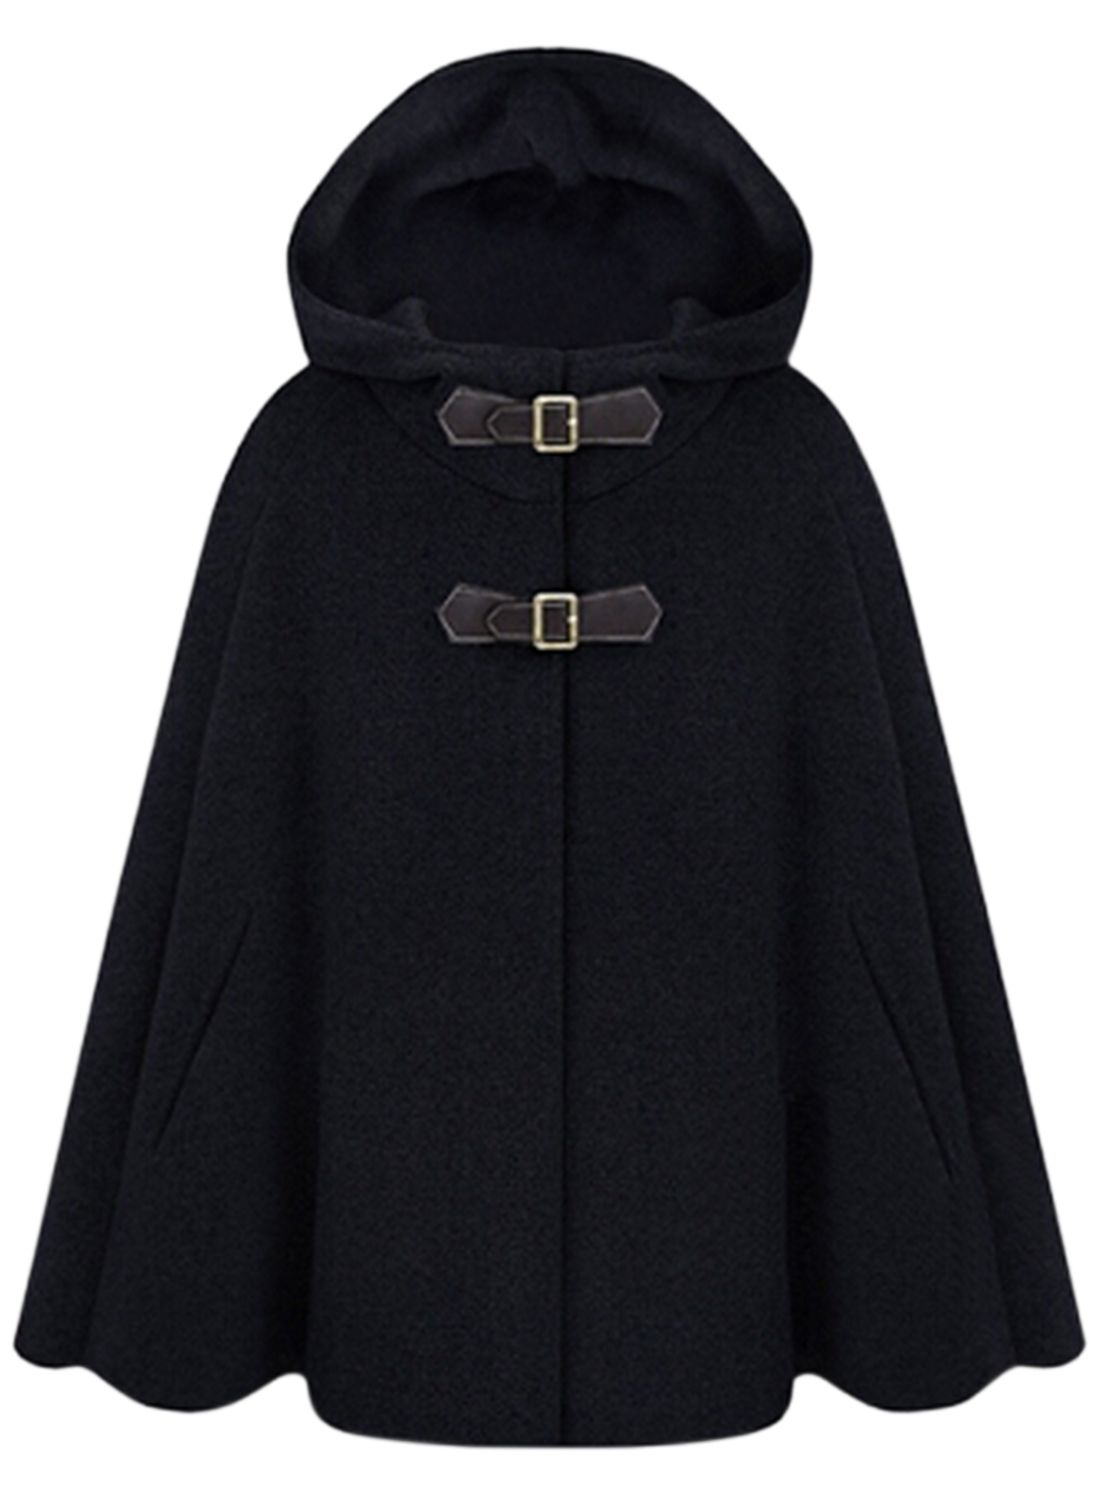 Cape Mit Kapuze Nähen The Cloak Coat Is Featuring Solid Color Cape Style With